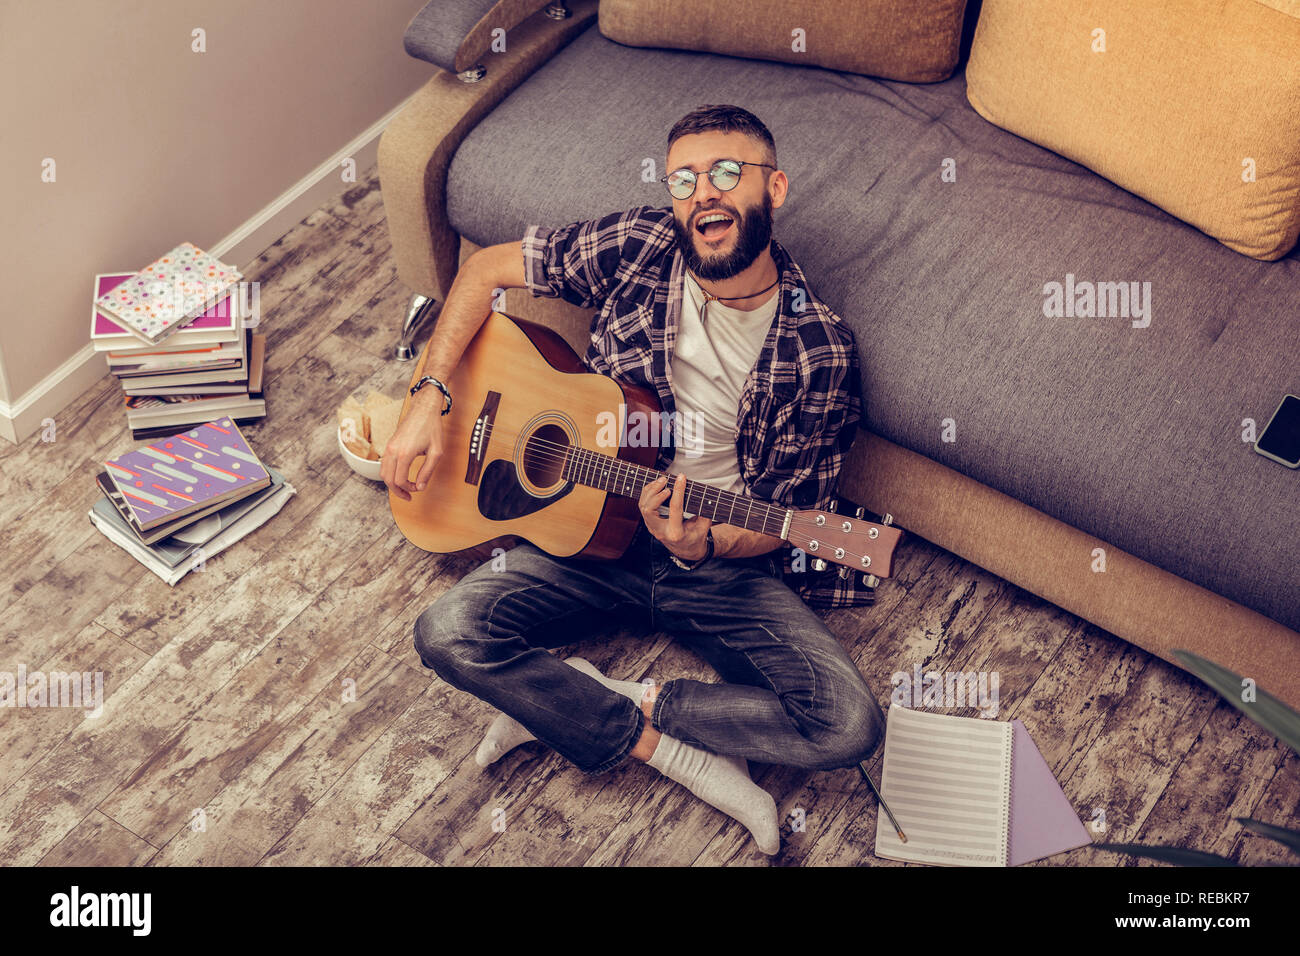 Creative talented musician playing the guitar at home - Stock Image